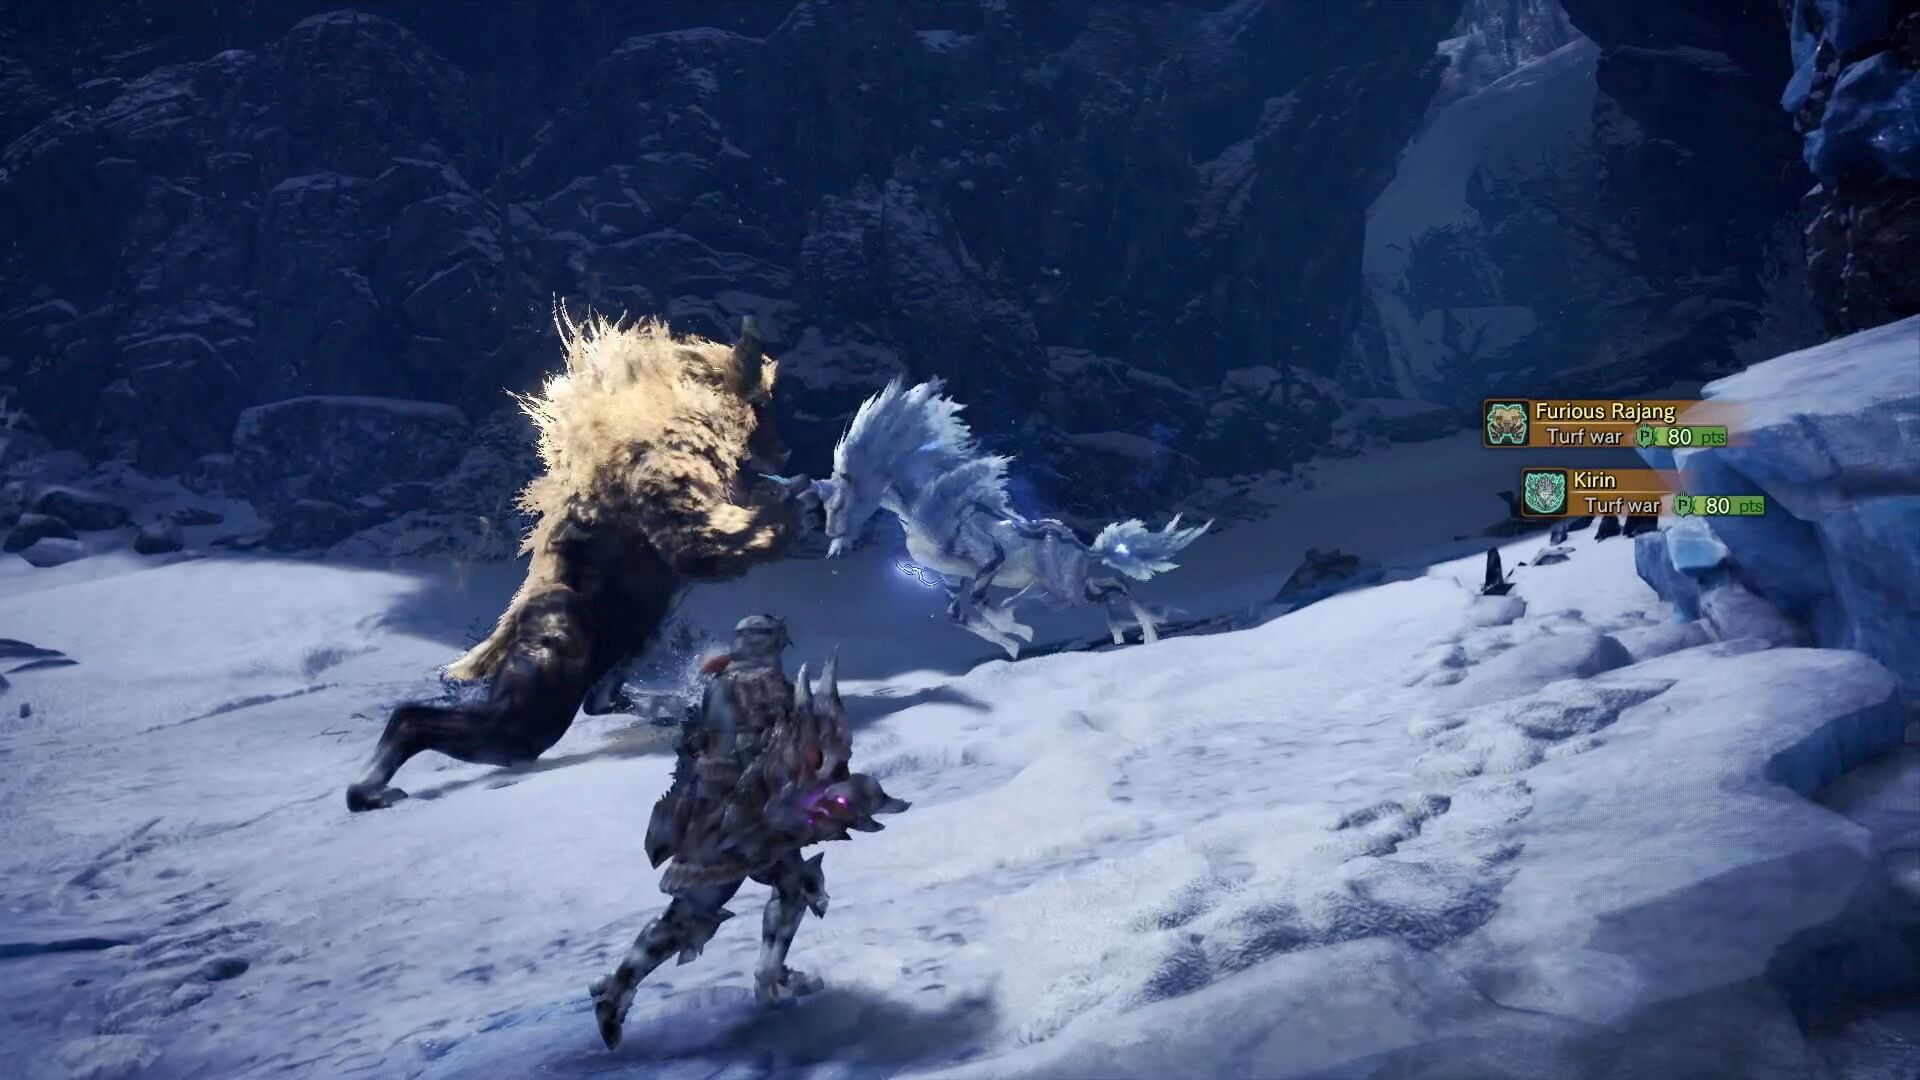 Electric Appetite of the Furious Rajang